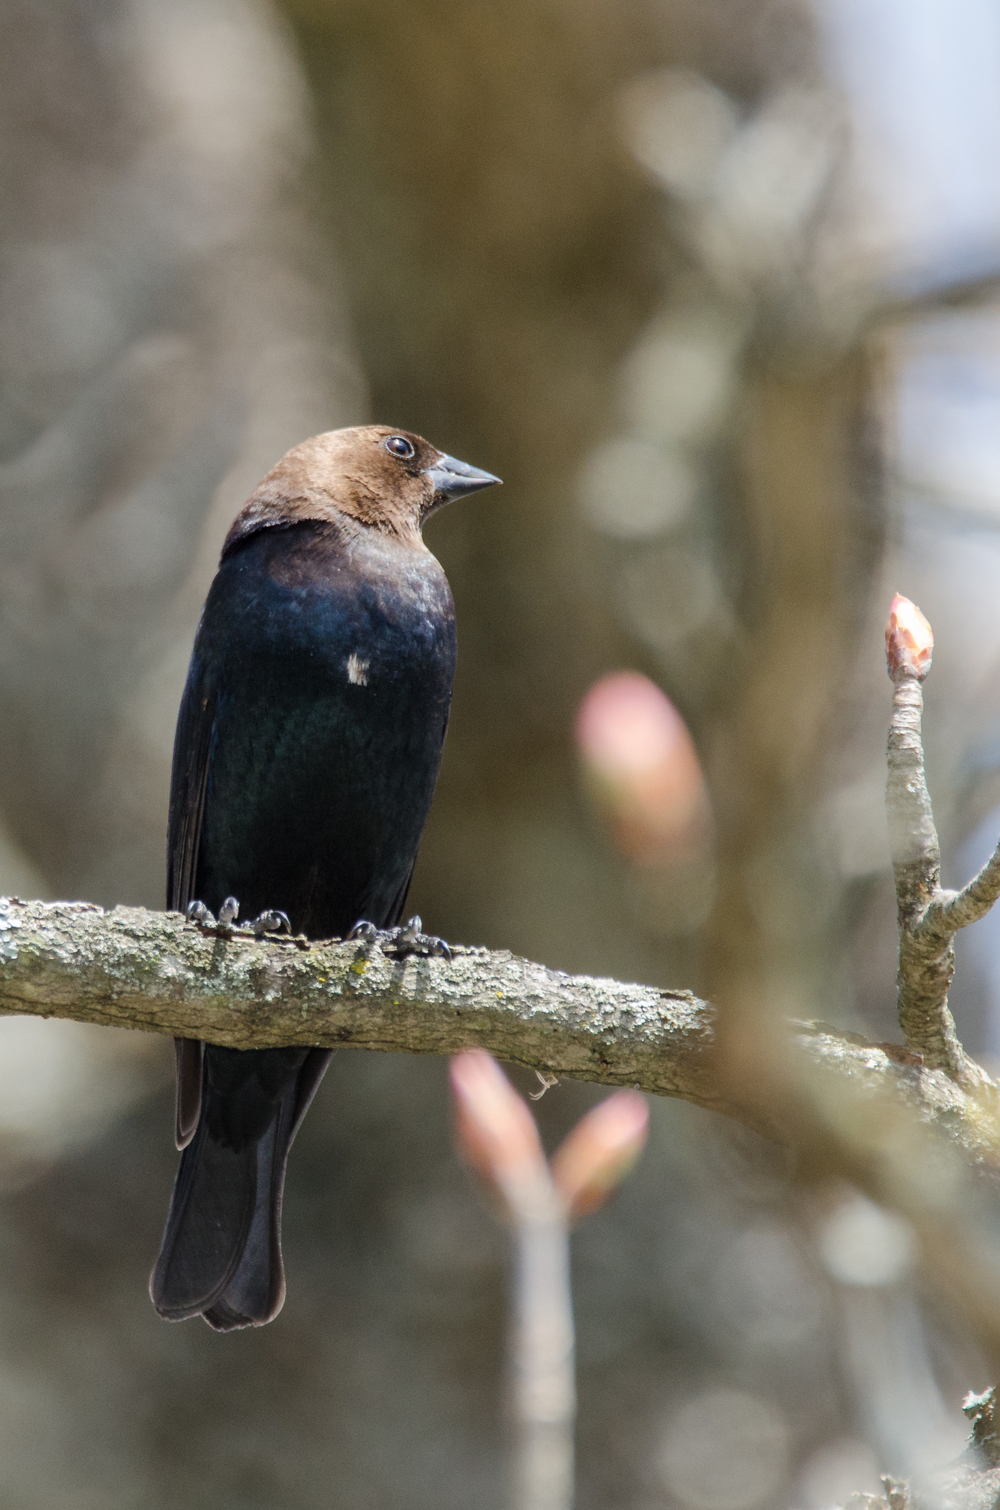 Brown-Headed Cowbird  Nikon D7000 ISO 800 600mm f/8.0 1/640 sec.